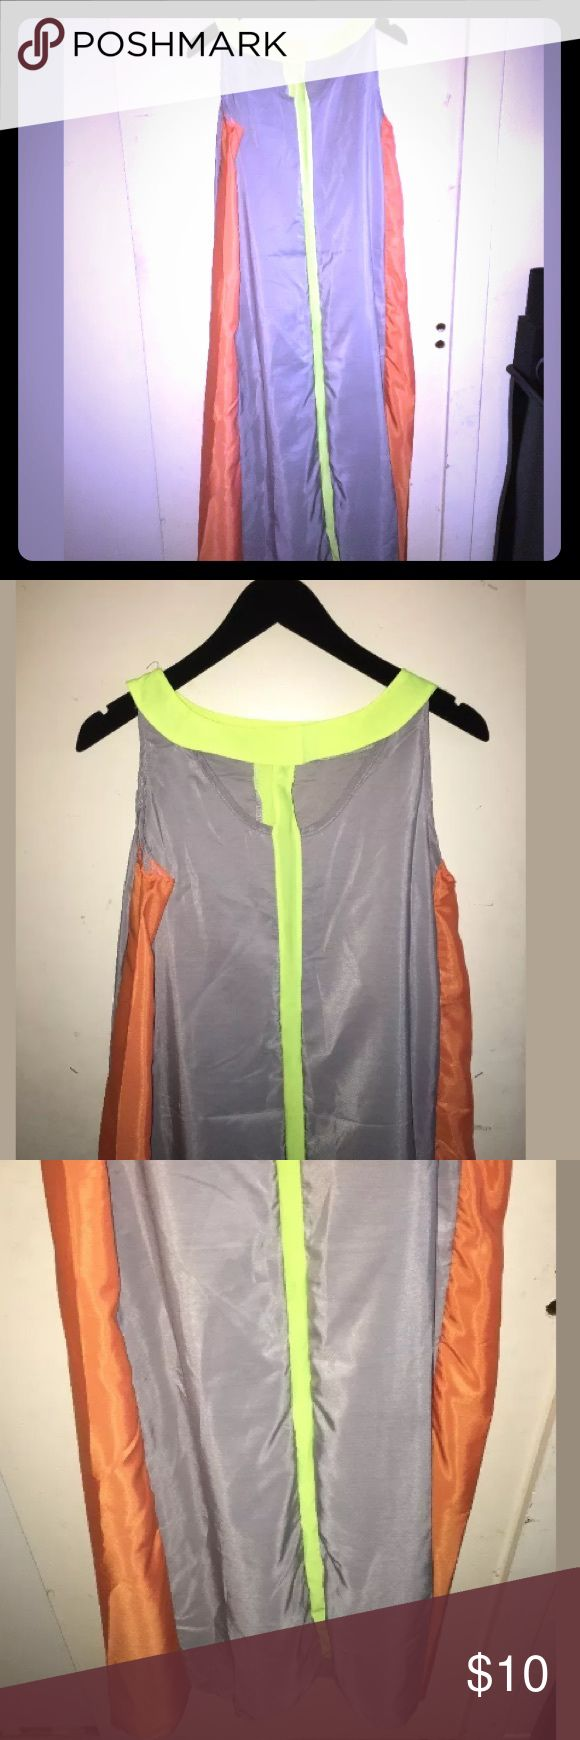 Gray Neon Orange and Yellow Maxi Dress Size Medium New women's maxi dress. Gray, neon orange and neon yellow. Brand new, tags have been removed. Unbranded Dresses Maxi